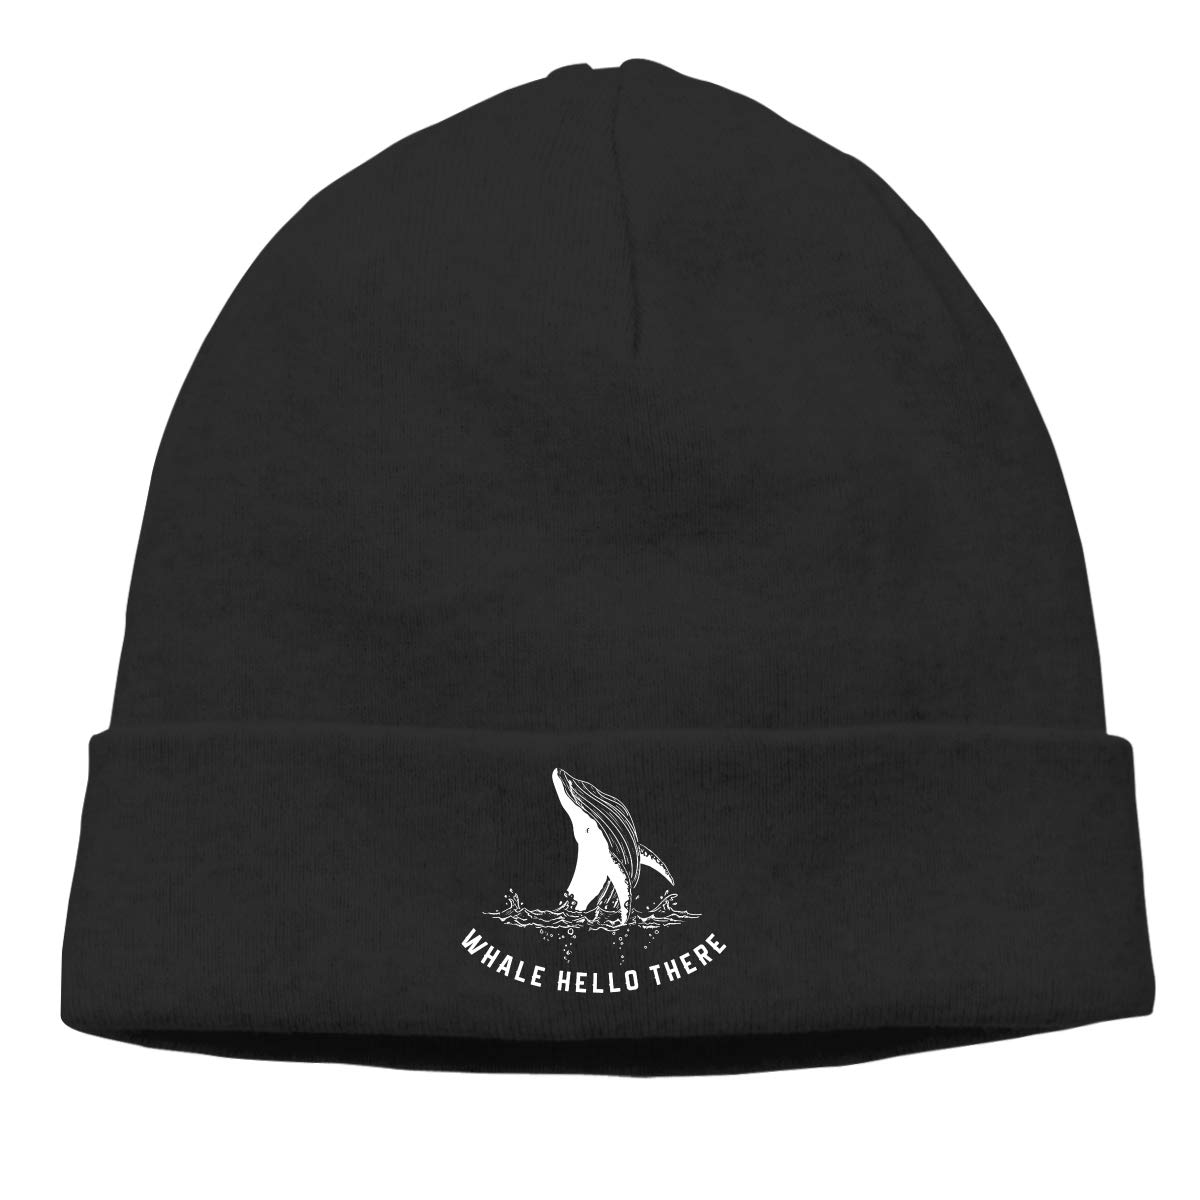 Whale Hello There CgyOIUY-lop Beanie Hat Warm Hats Skull Cap Knitted Hat